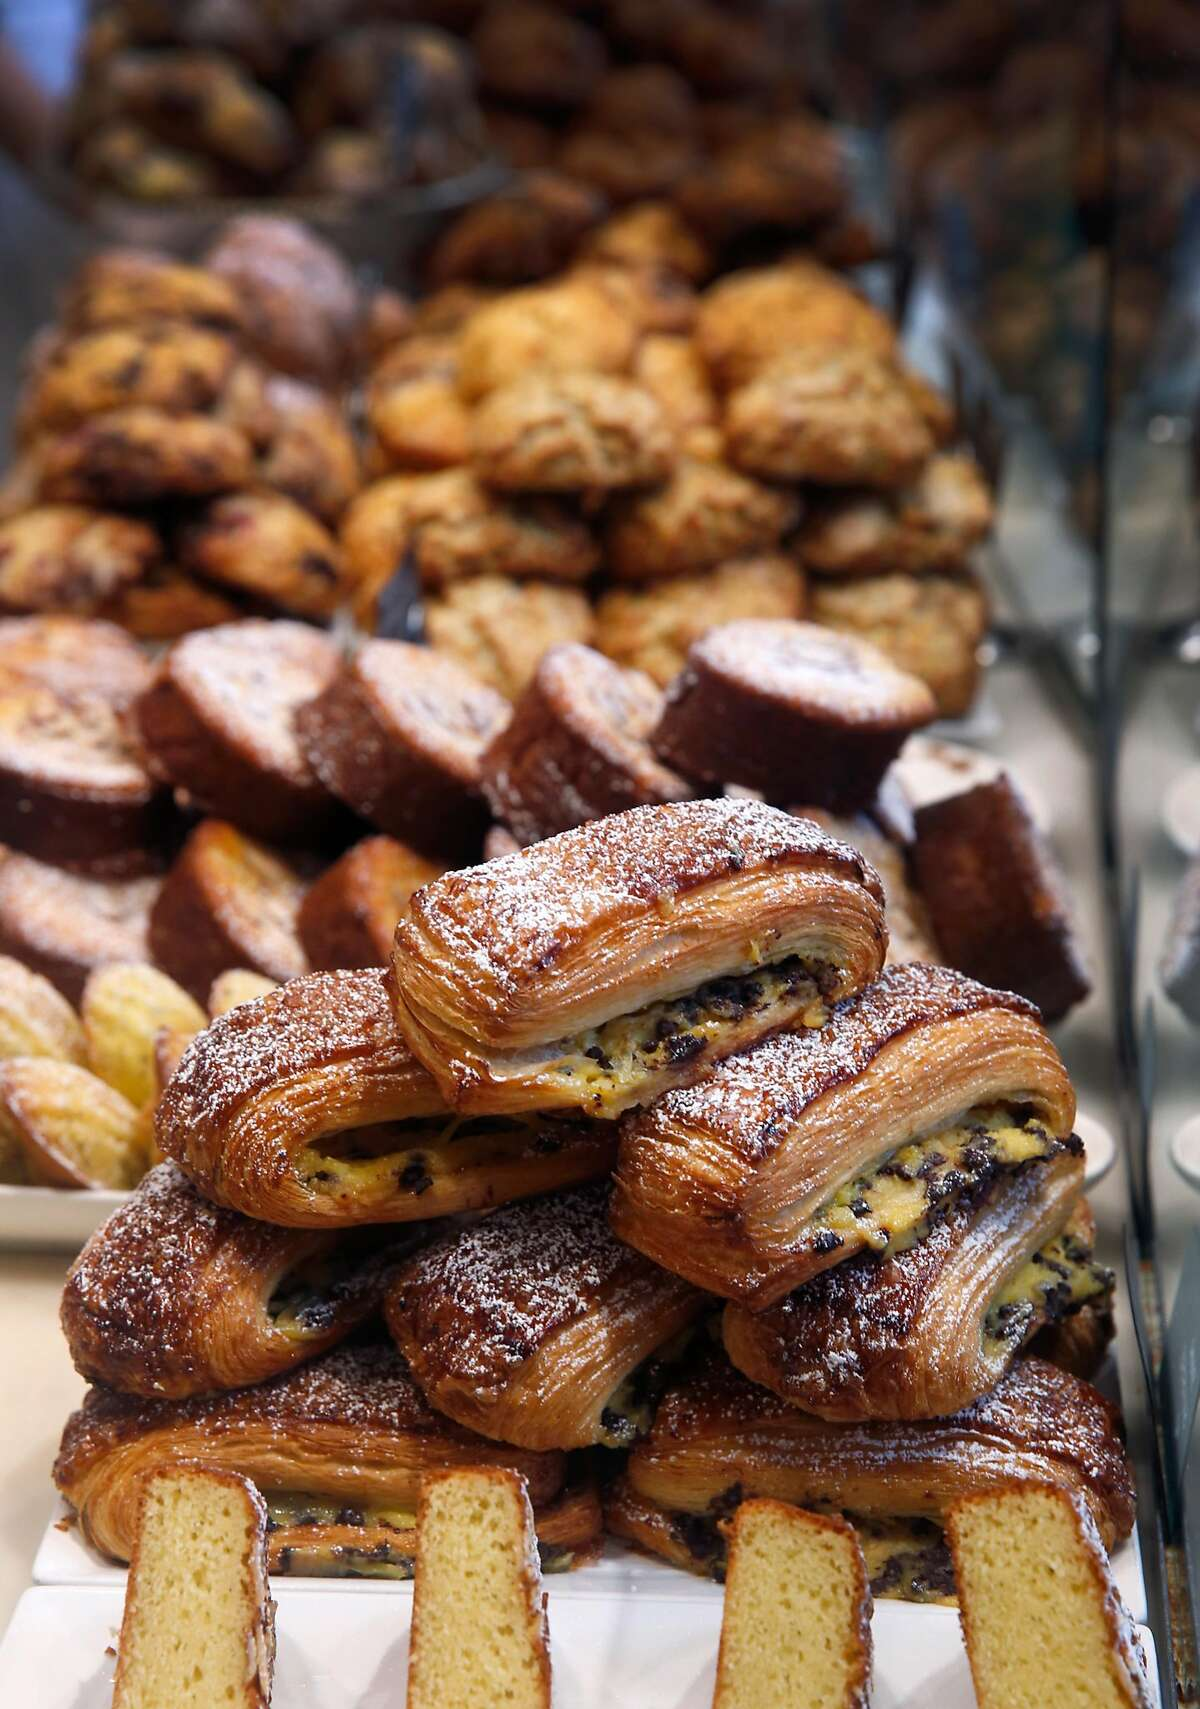 Fresh pastries are displayed at b. Patisserie on California Street in San Francisco, Calif. on Saturday, March 10, 2018. Owners of the popular bakery are opening a shop in Seoul, South Korea next month.